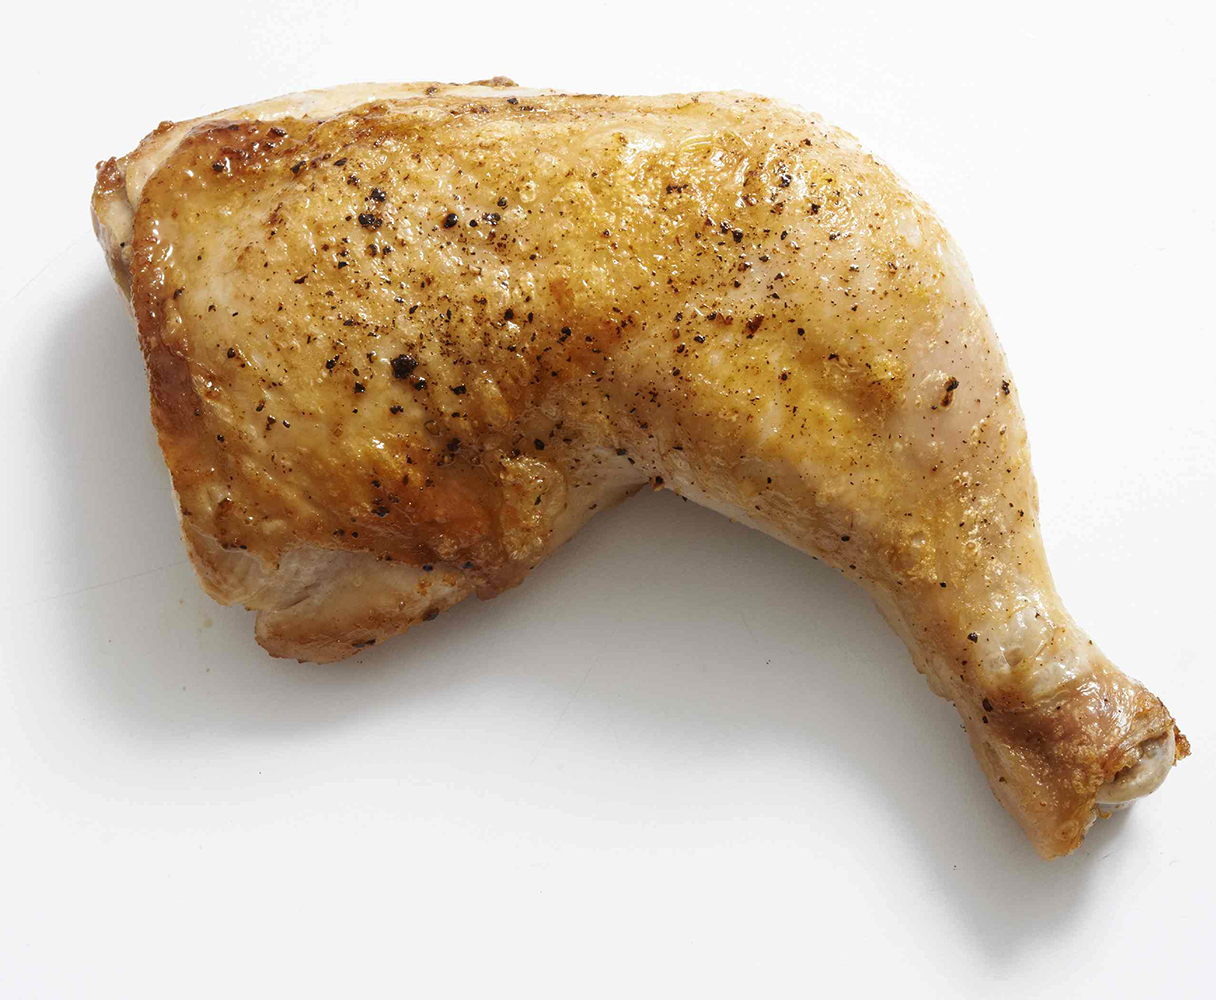 How to make breaded chicken legs in oven